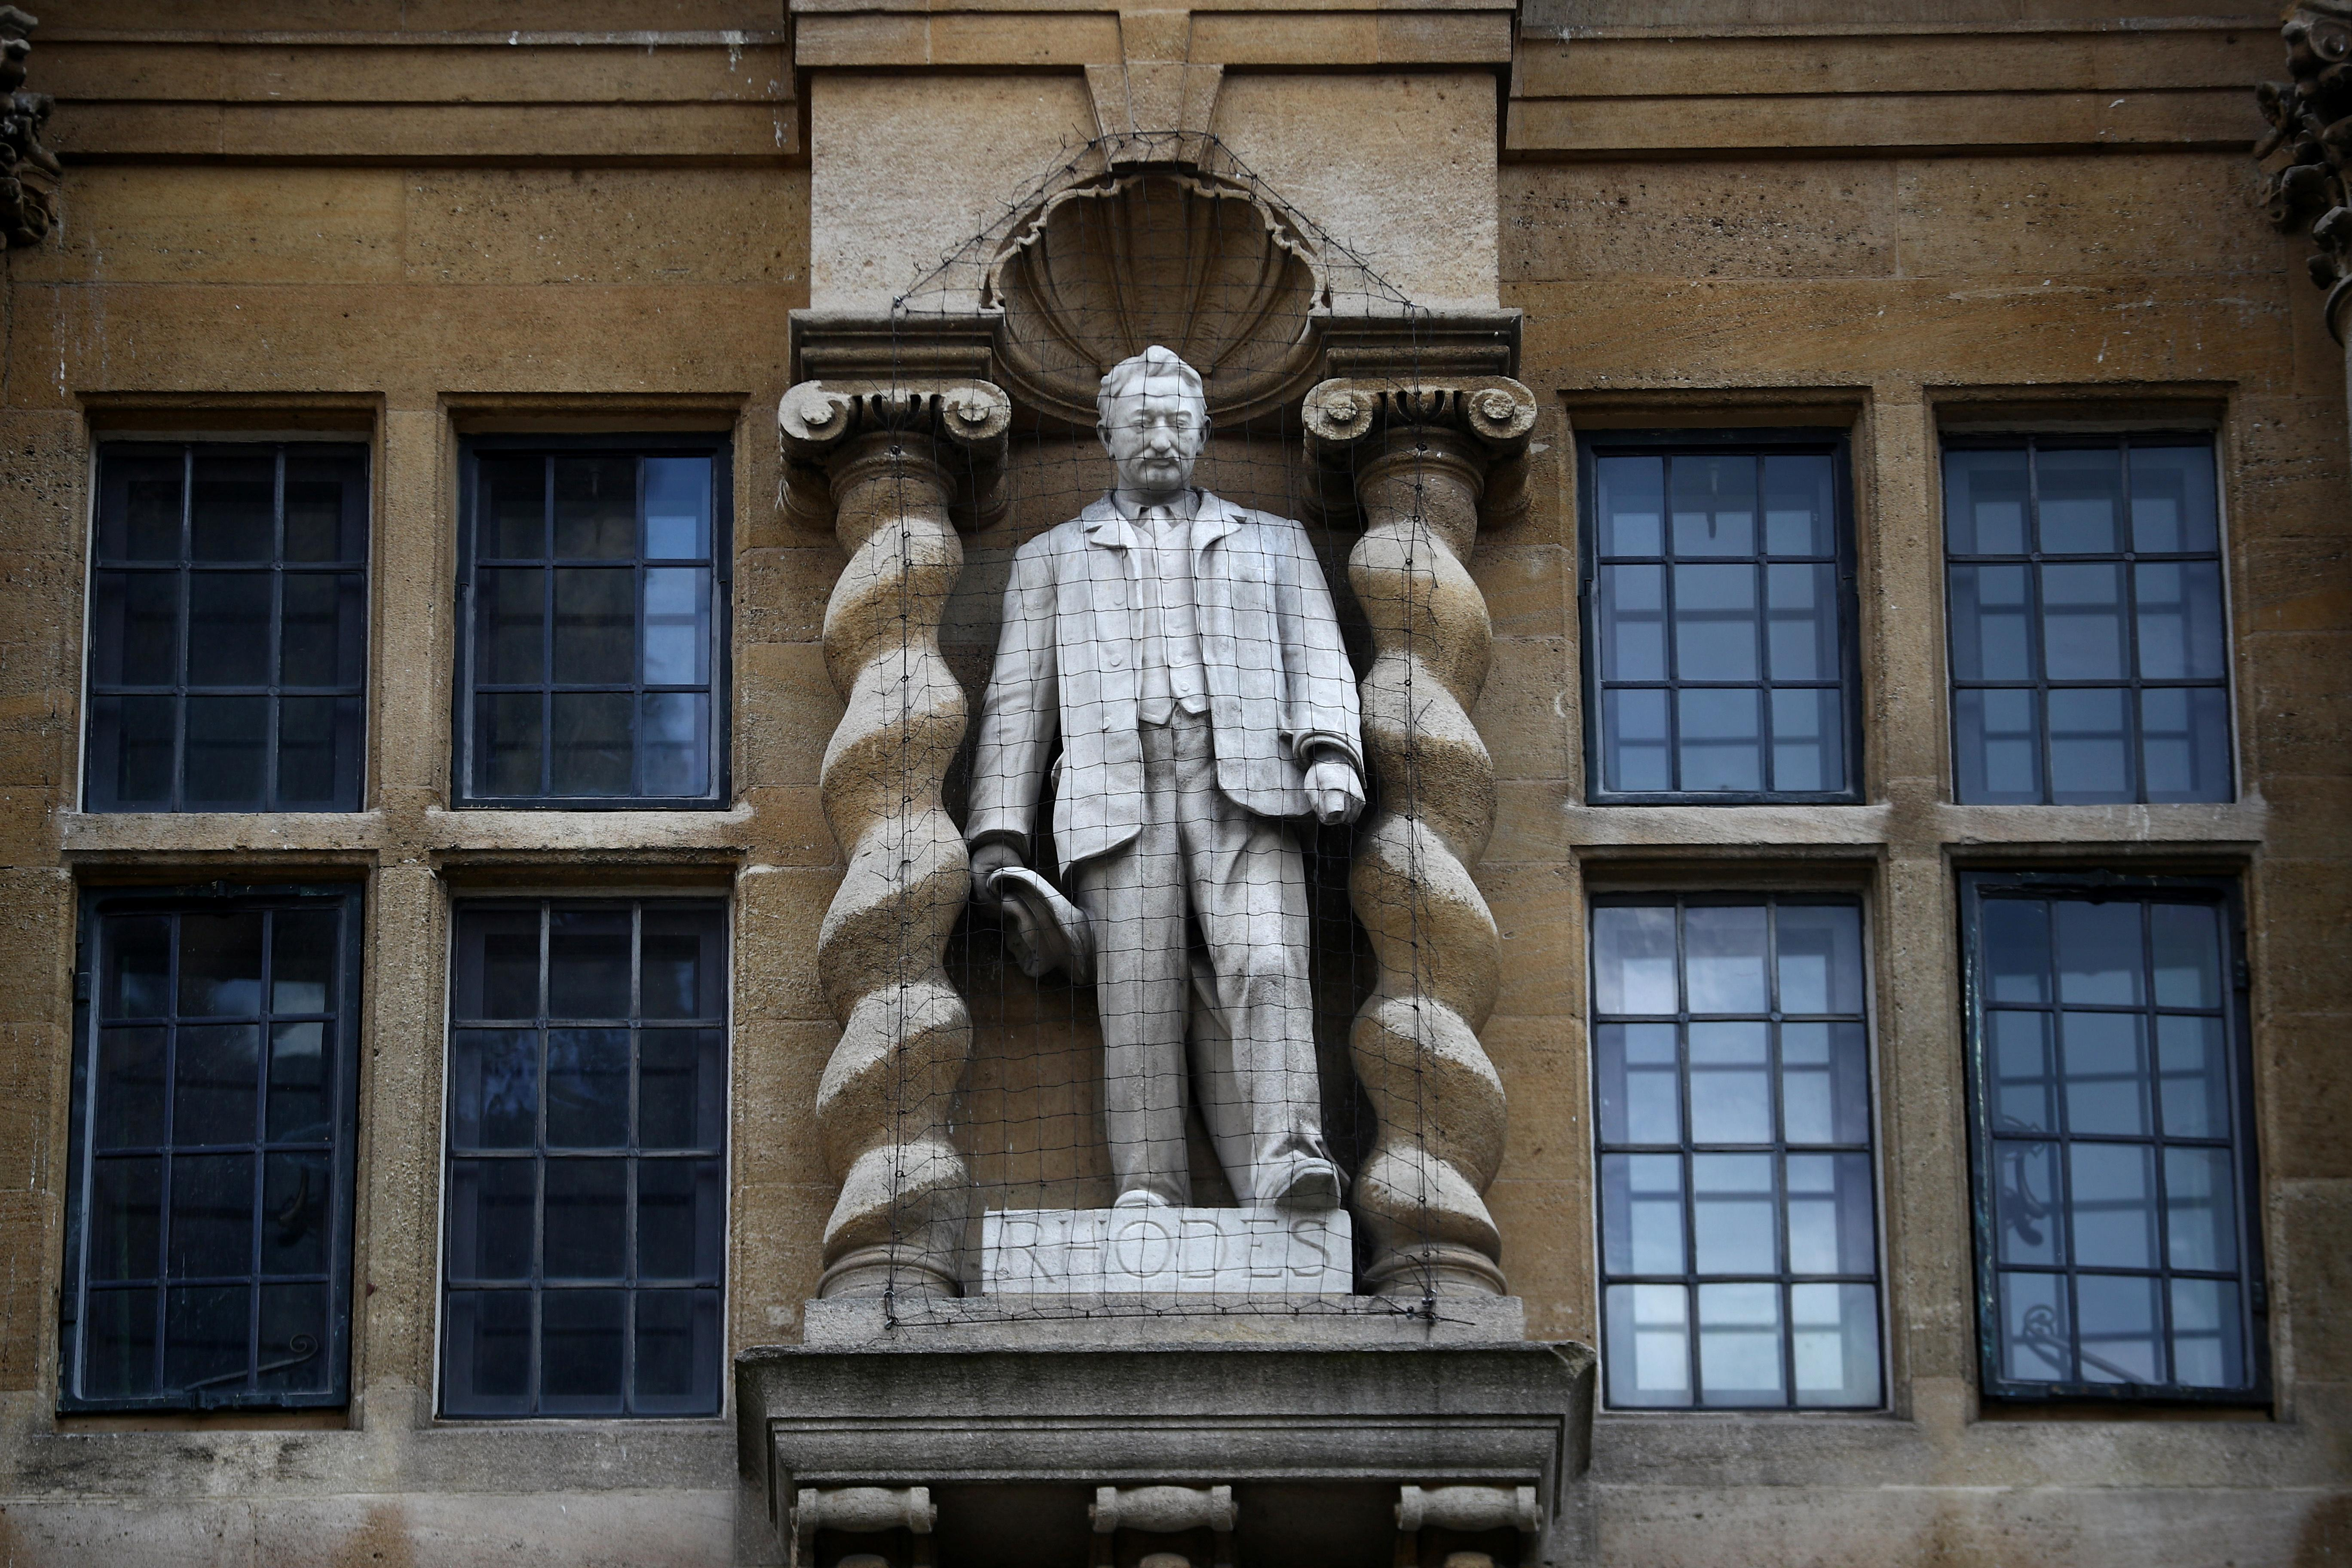 Rhodes Must Fall - Oxford protesters target statue of colonialist